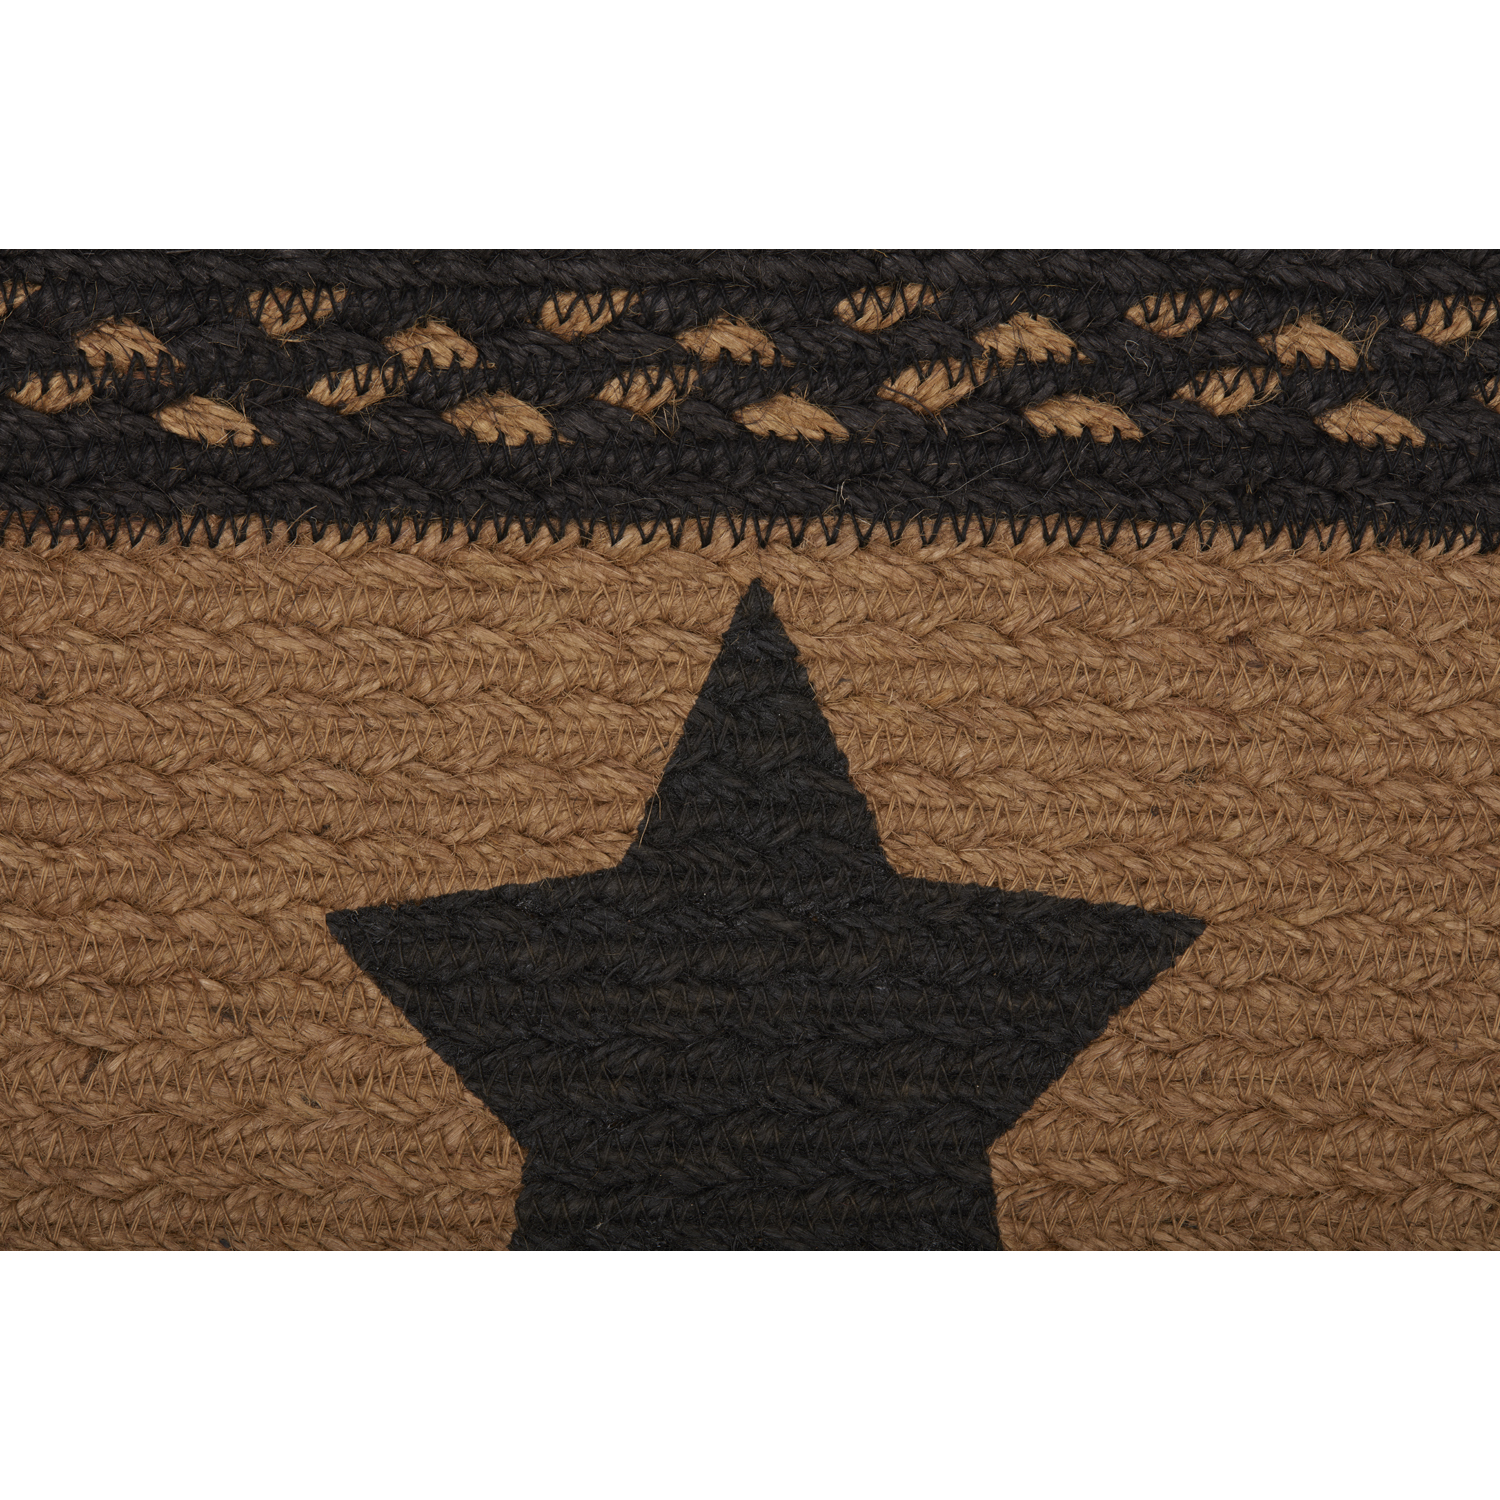 Farmhouse-Jute-Stair-Tread-Stencil-Stars-Oval-Latex-8.5x27-image-4